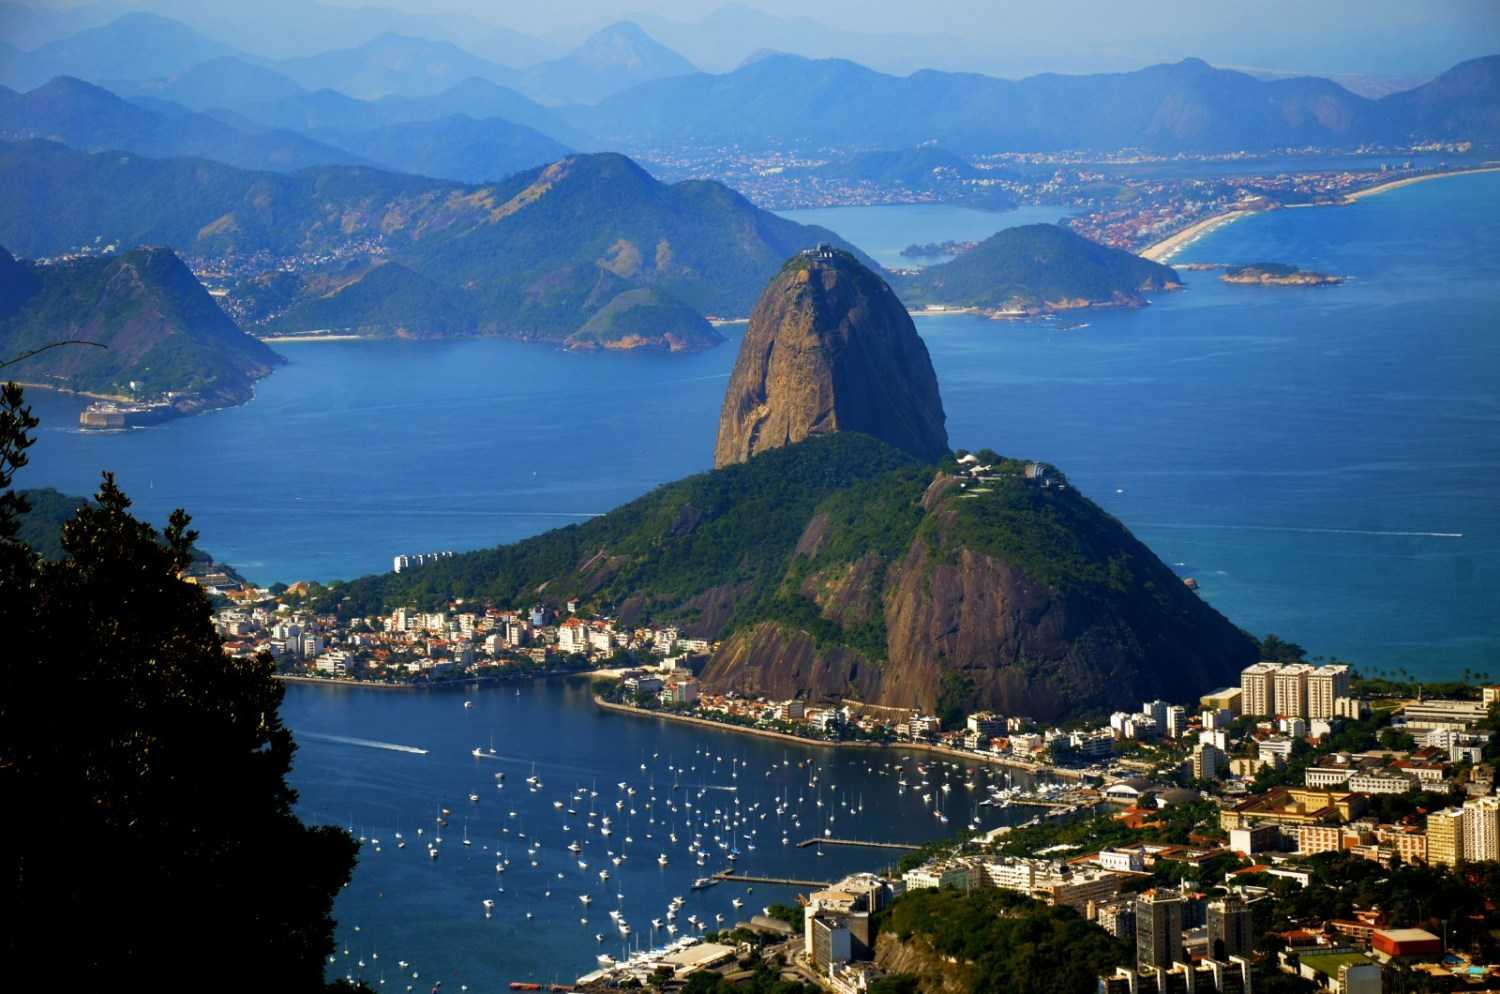 Rio de Janeiro's iconic Guanabara Bay has also become a global symbol of polluted urban waterways during the 2016 Olympic Games. Photo courtesy Rodrigo Soldon 2 via Flickr Creative Commons